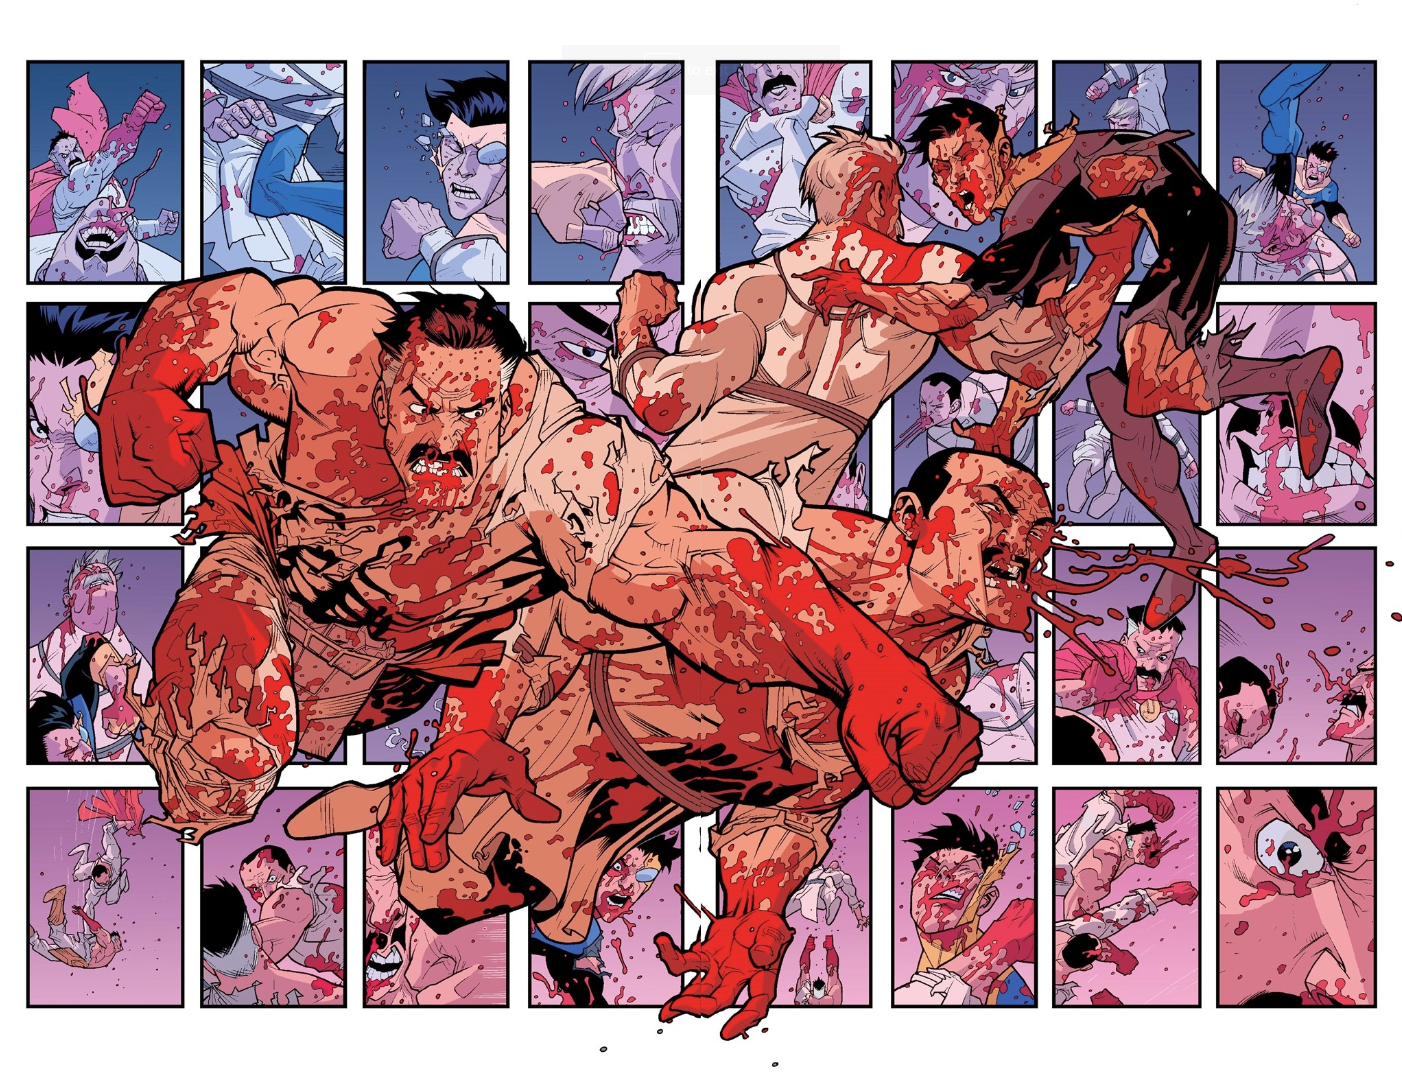 Excerpt] Ryan Ottley, Cliff Rathburn, and Bill Crabtree deliver a hell of a  brutal fight scene (Invincible #29) : comicbooks